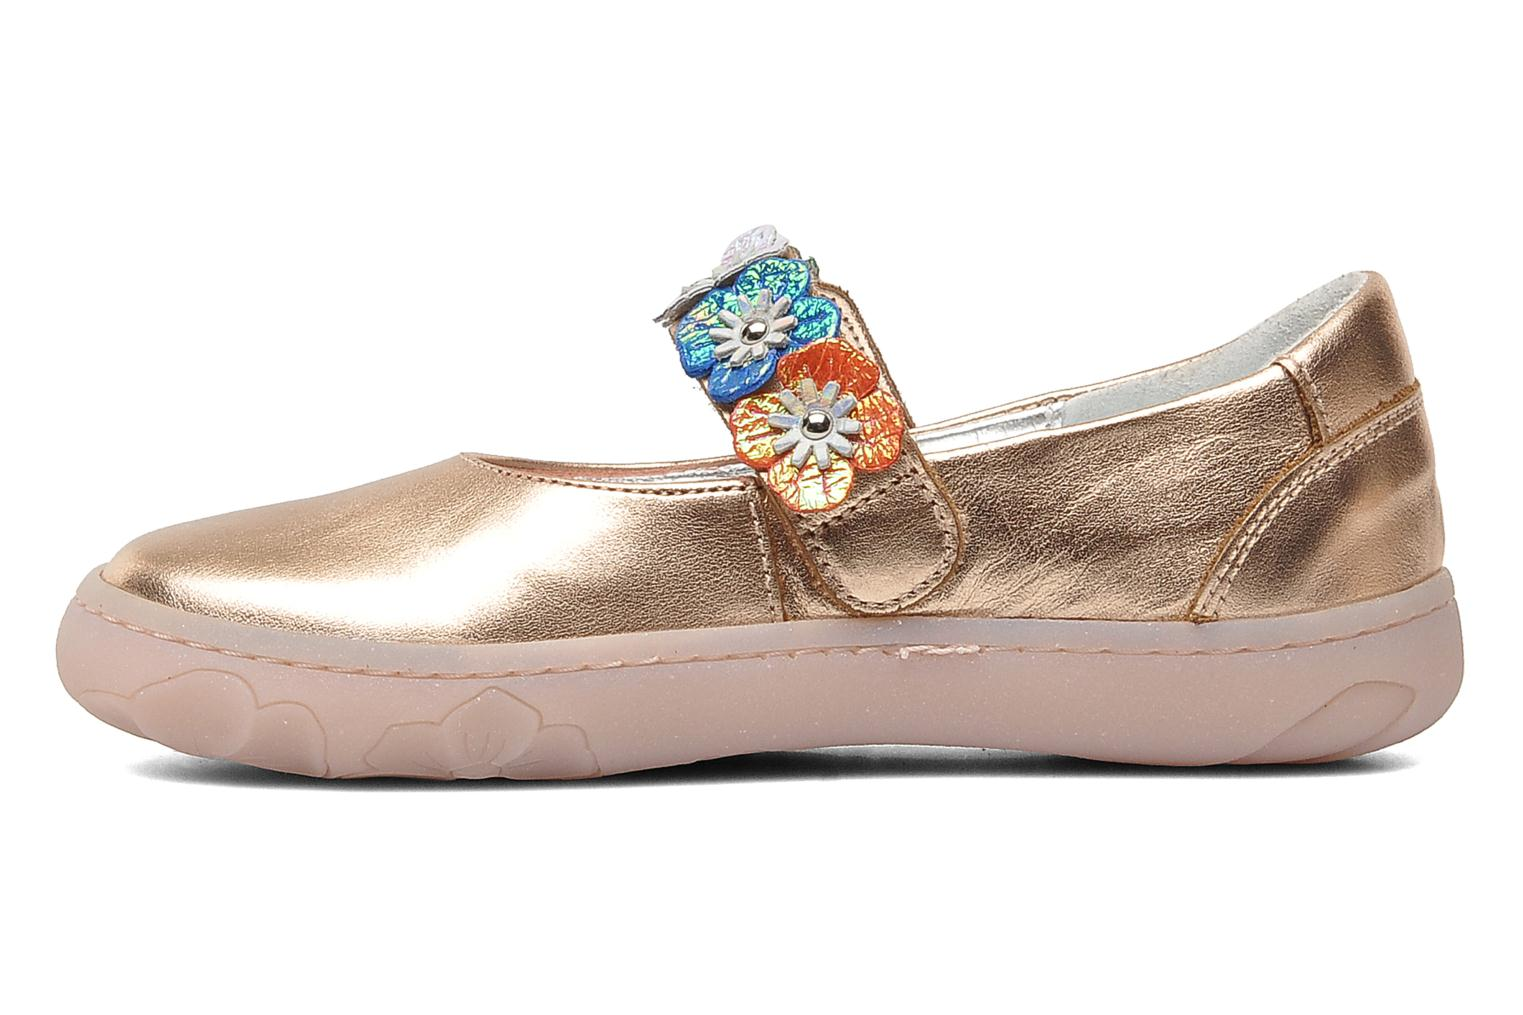 MAPLE VELCRO SANDAL BLUE/ROSE/CORAIL